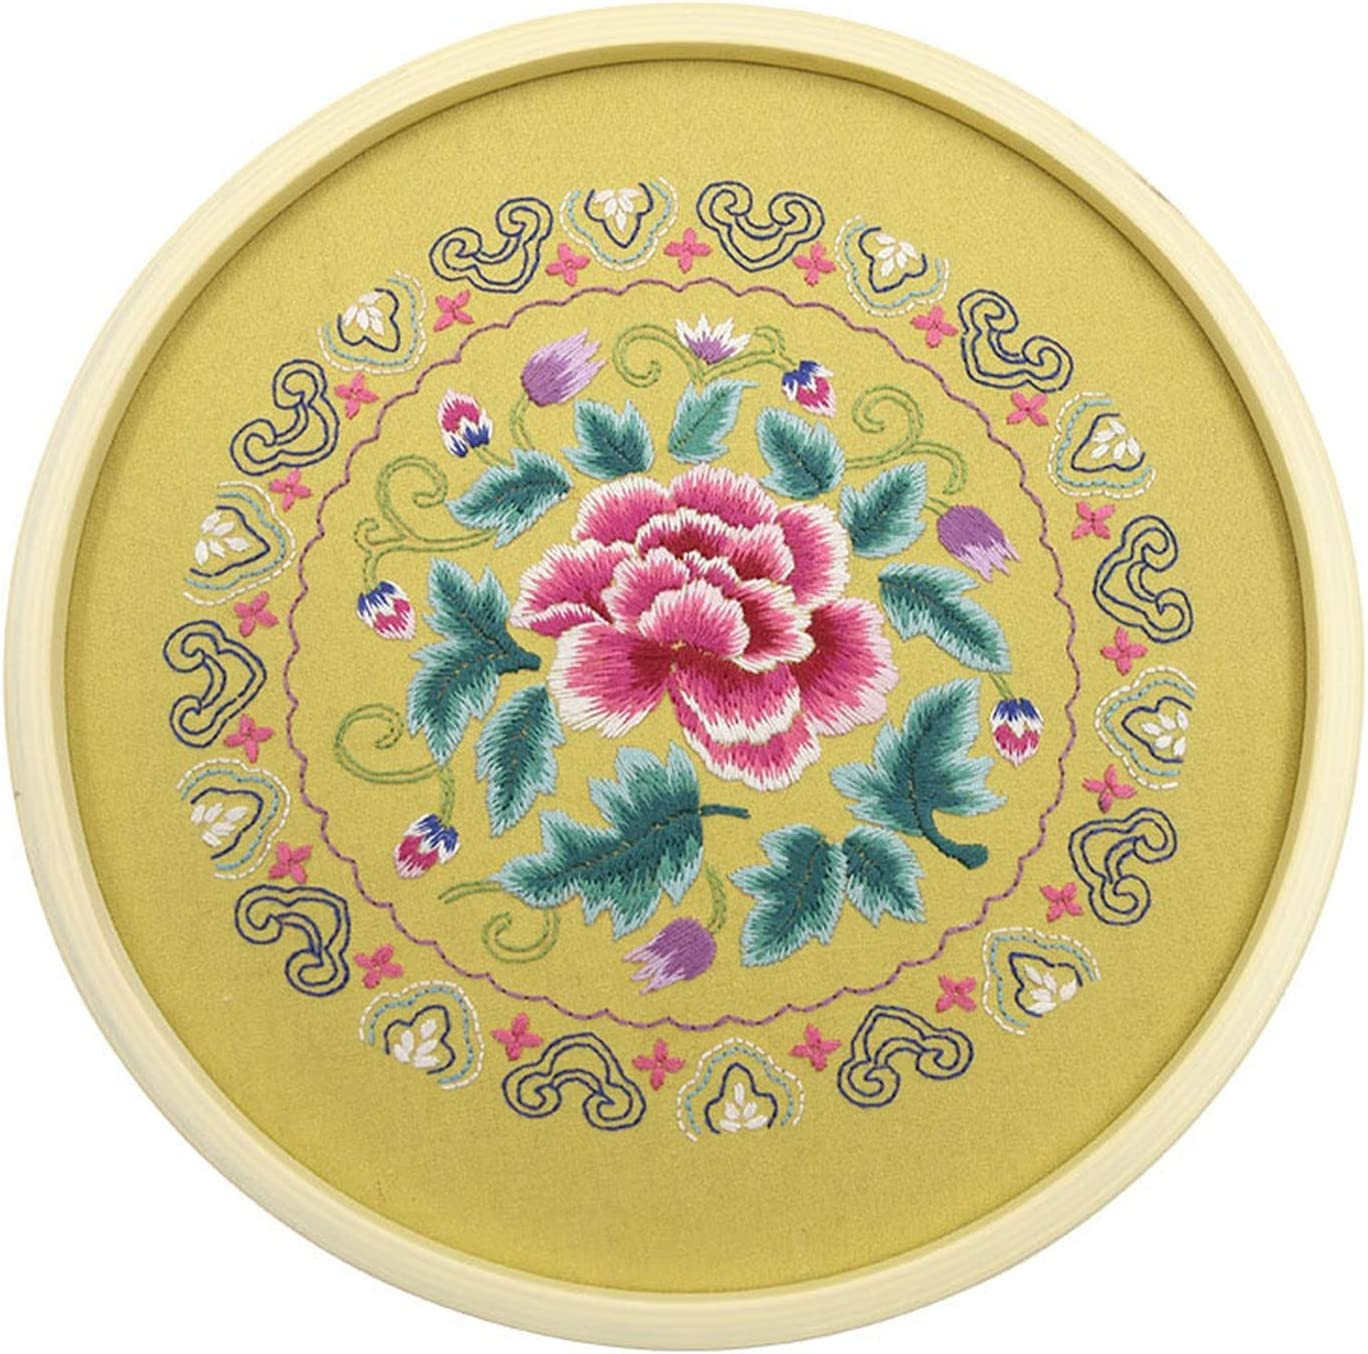 Chinese DIY Flowers Embroidery 5 popular Kits with Bamboo Hoop 30cm Max 58% OFF Needle